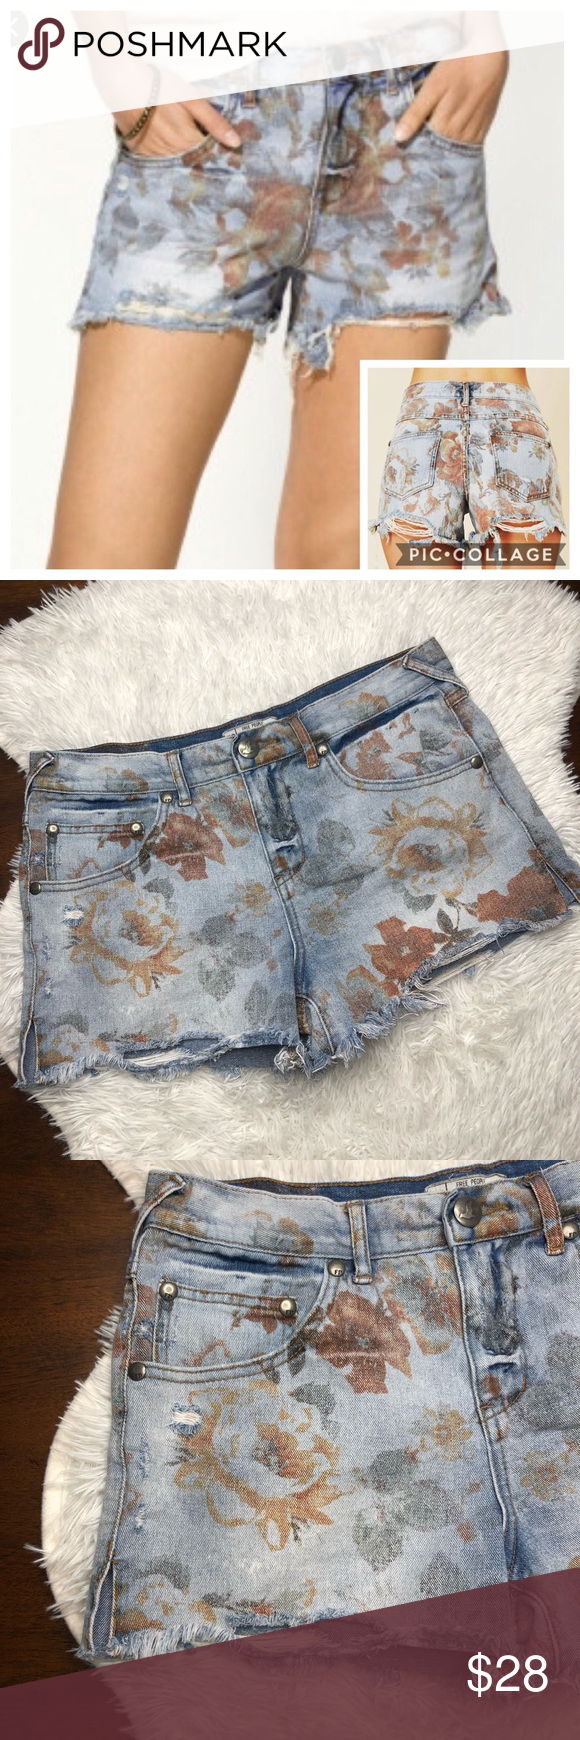 fb5c9293d0 Free People Floral Distressed Denim Shorts EUC. Size 29. Distressed hem  with side slits. Light floral print. 100% cotton. Free People Shorts Jean  Shorts